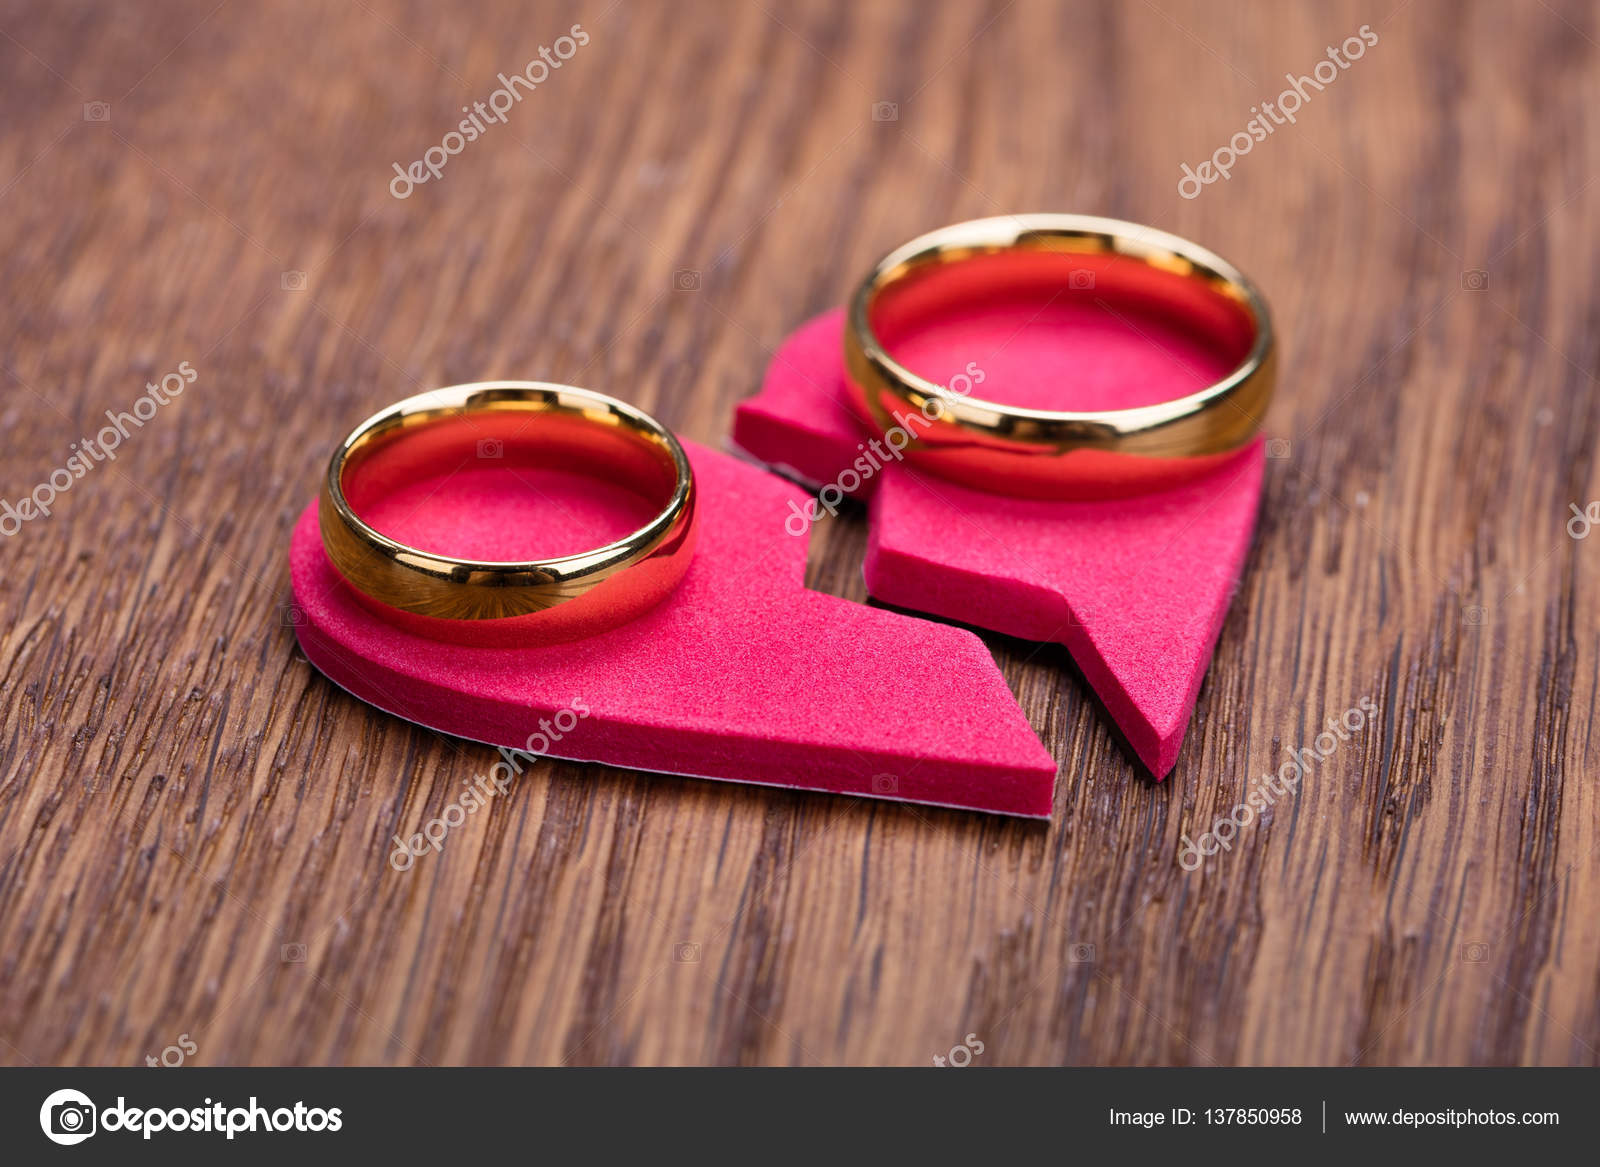 download photography royalty devotion of illustration gold free rings wedding stock broken